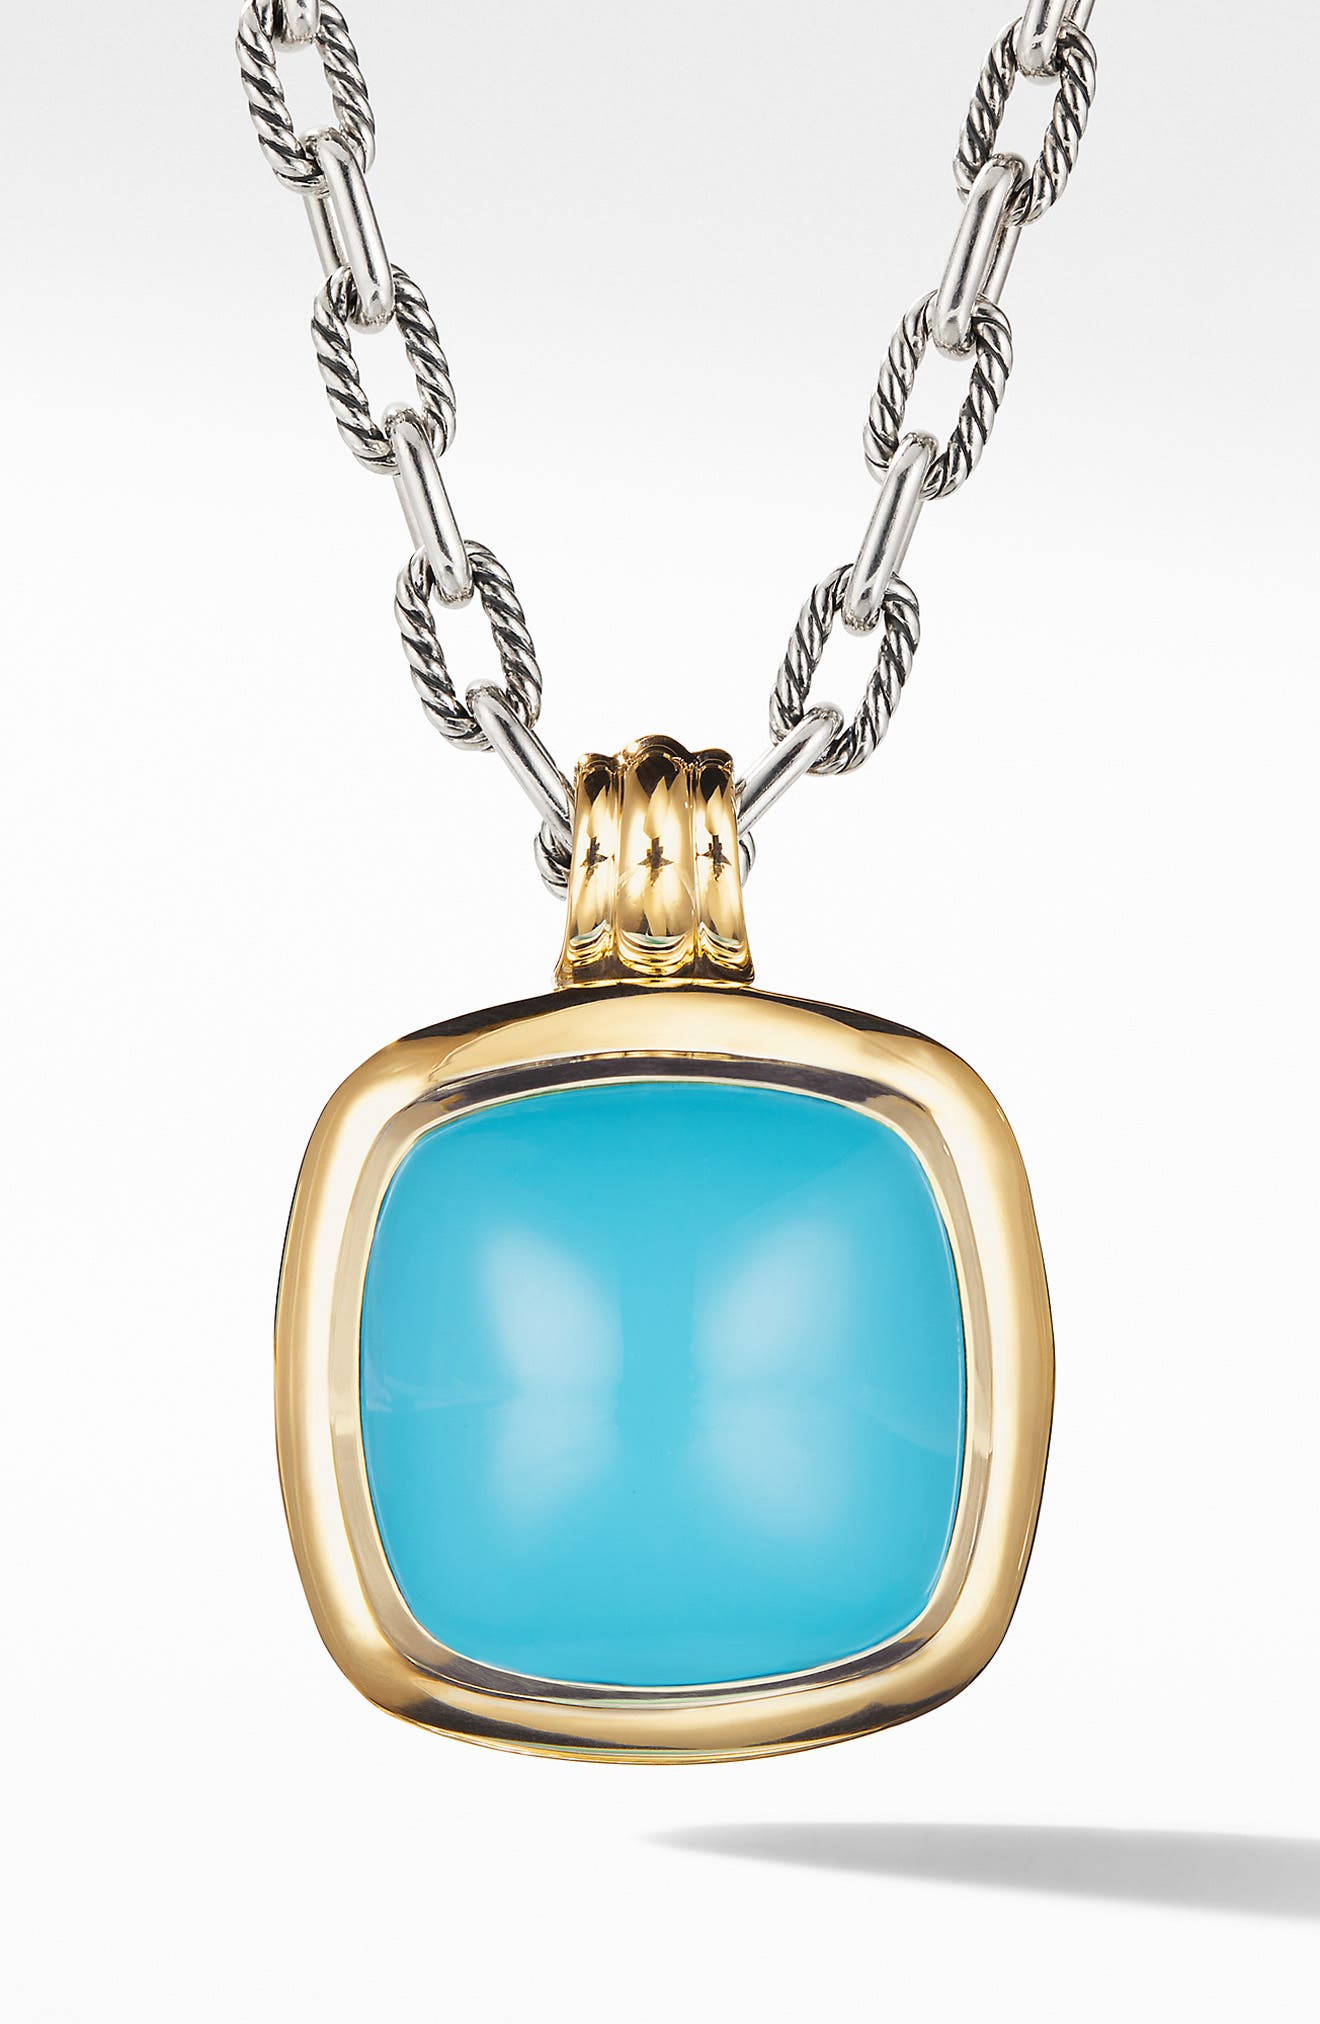 Albion Reconstituted Turquoise Amulet Enhancer,                             Main thumbnail 1, color,                             SILVER/ TURQUOISE